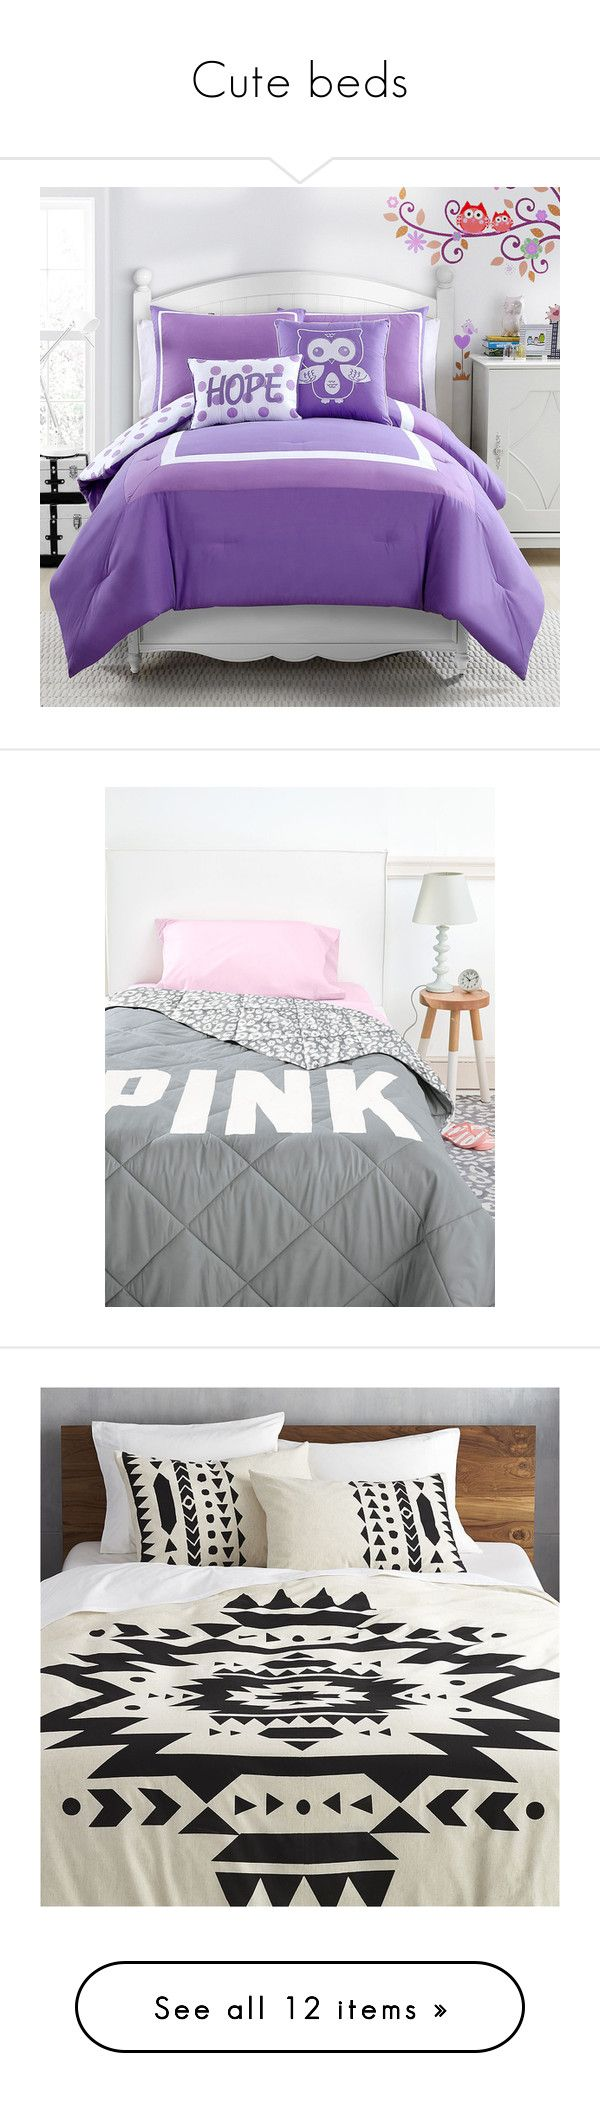 """Cute beds"" by nelson-iv ❤ liked on Polyvore featuring home, bed & bath, bedding, comforters, twin comforter sets, turquoise comforter, twin bedding, turquoise comforter sets, twin comforter and twin extra long bedding"